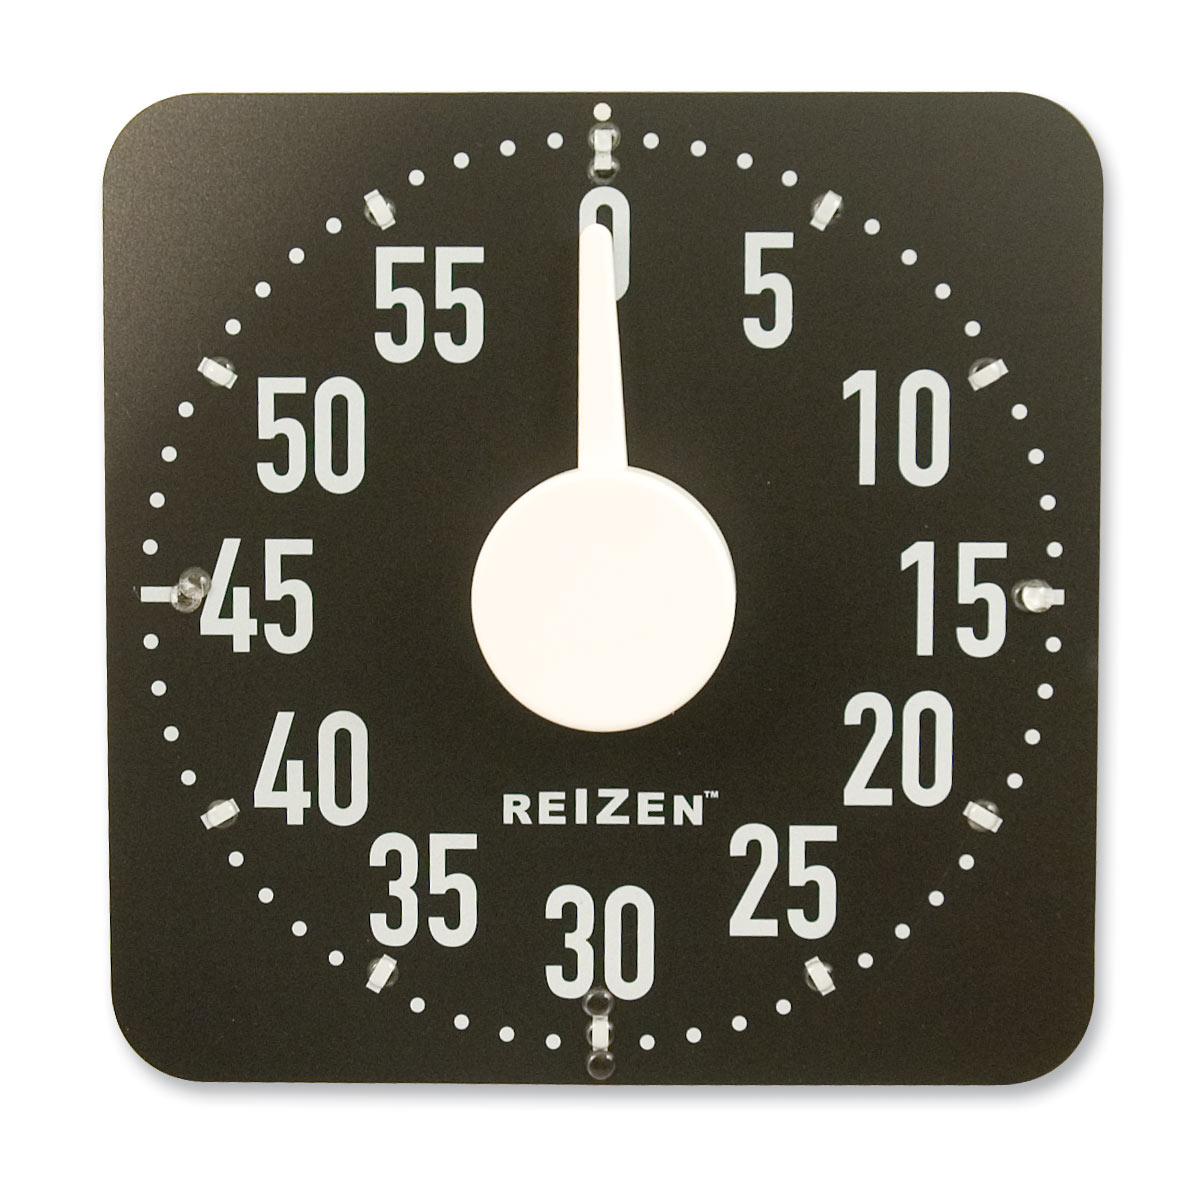 Extra Large Magnetic Kitchen Timer - Tactile Price: $29.95